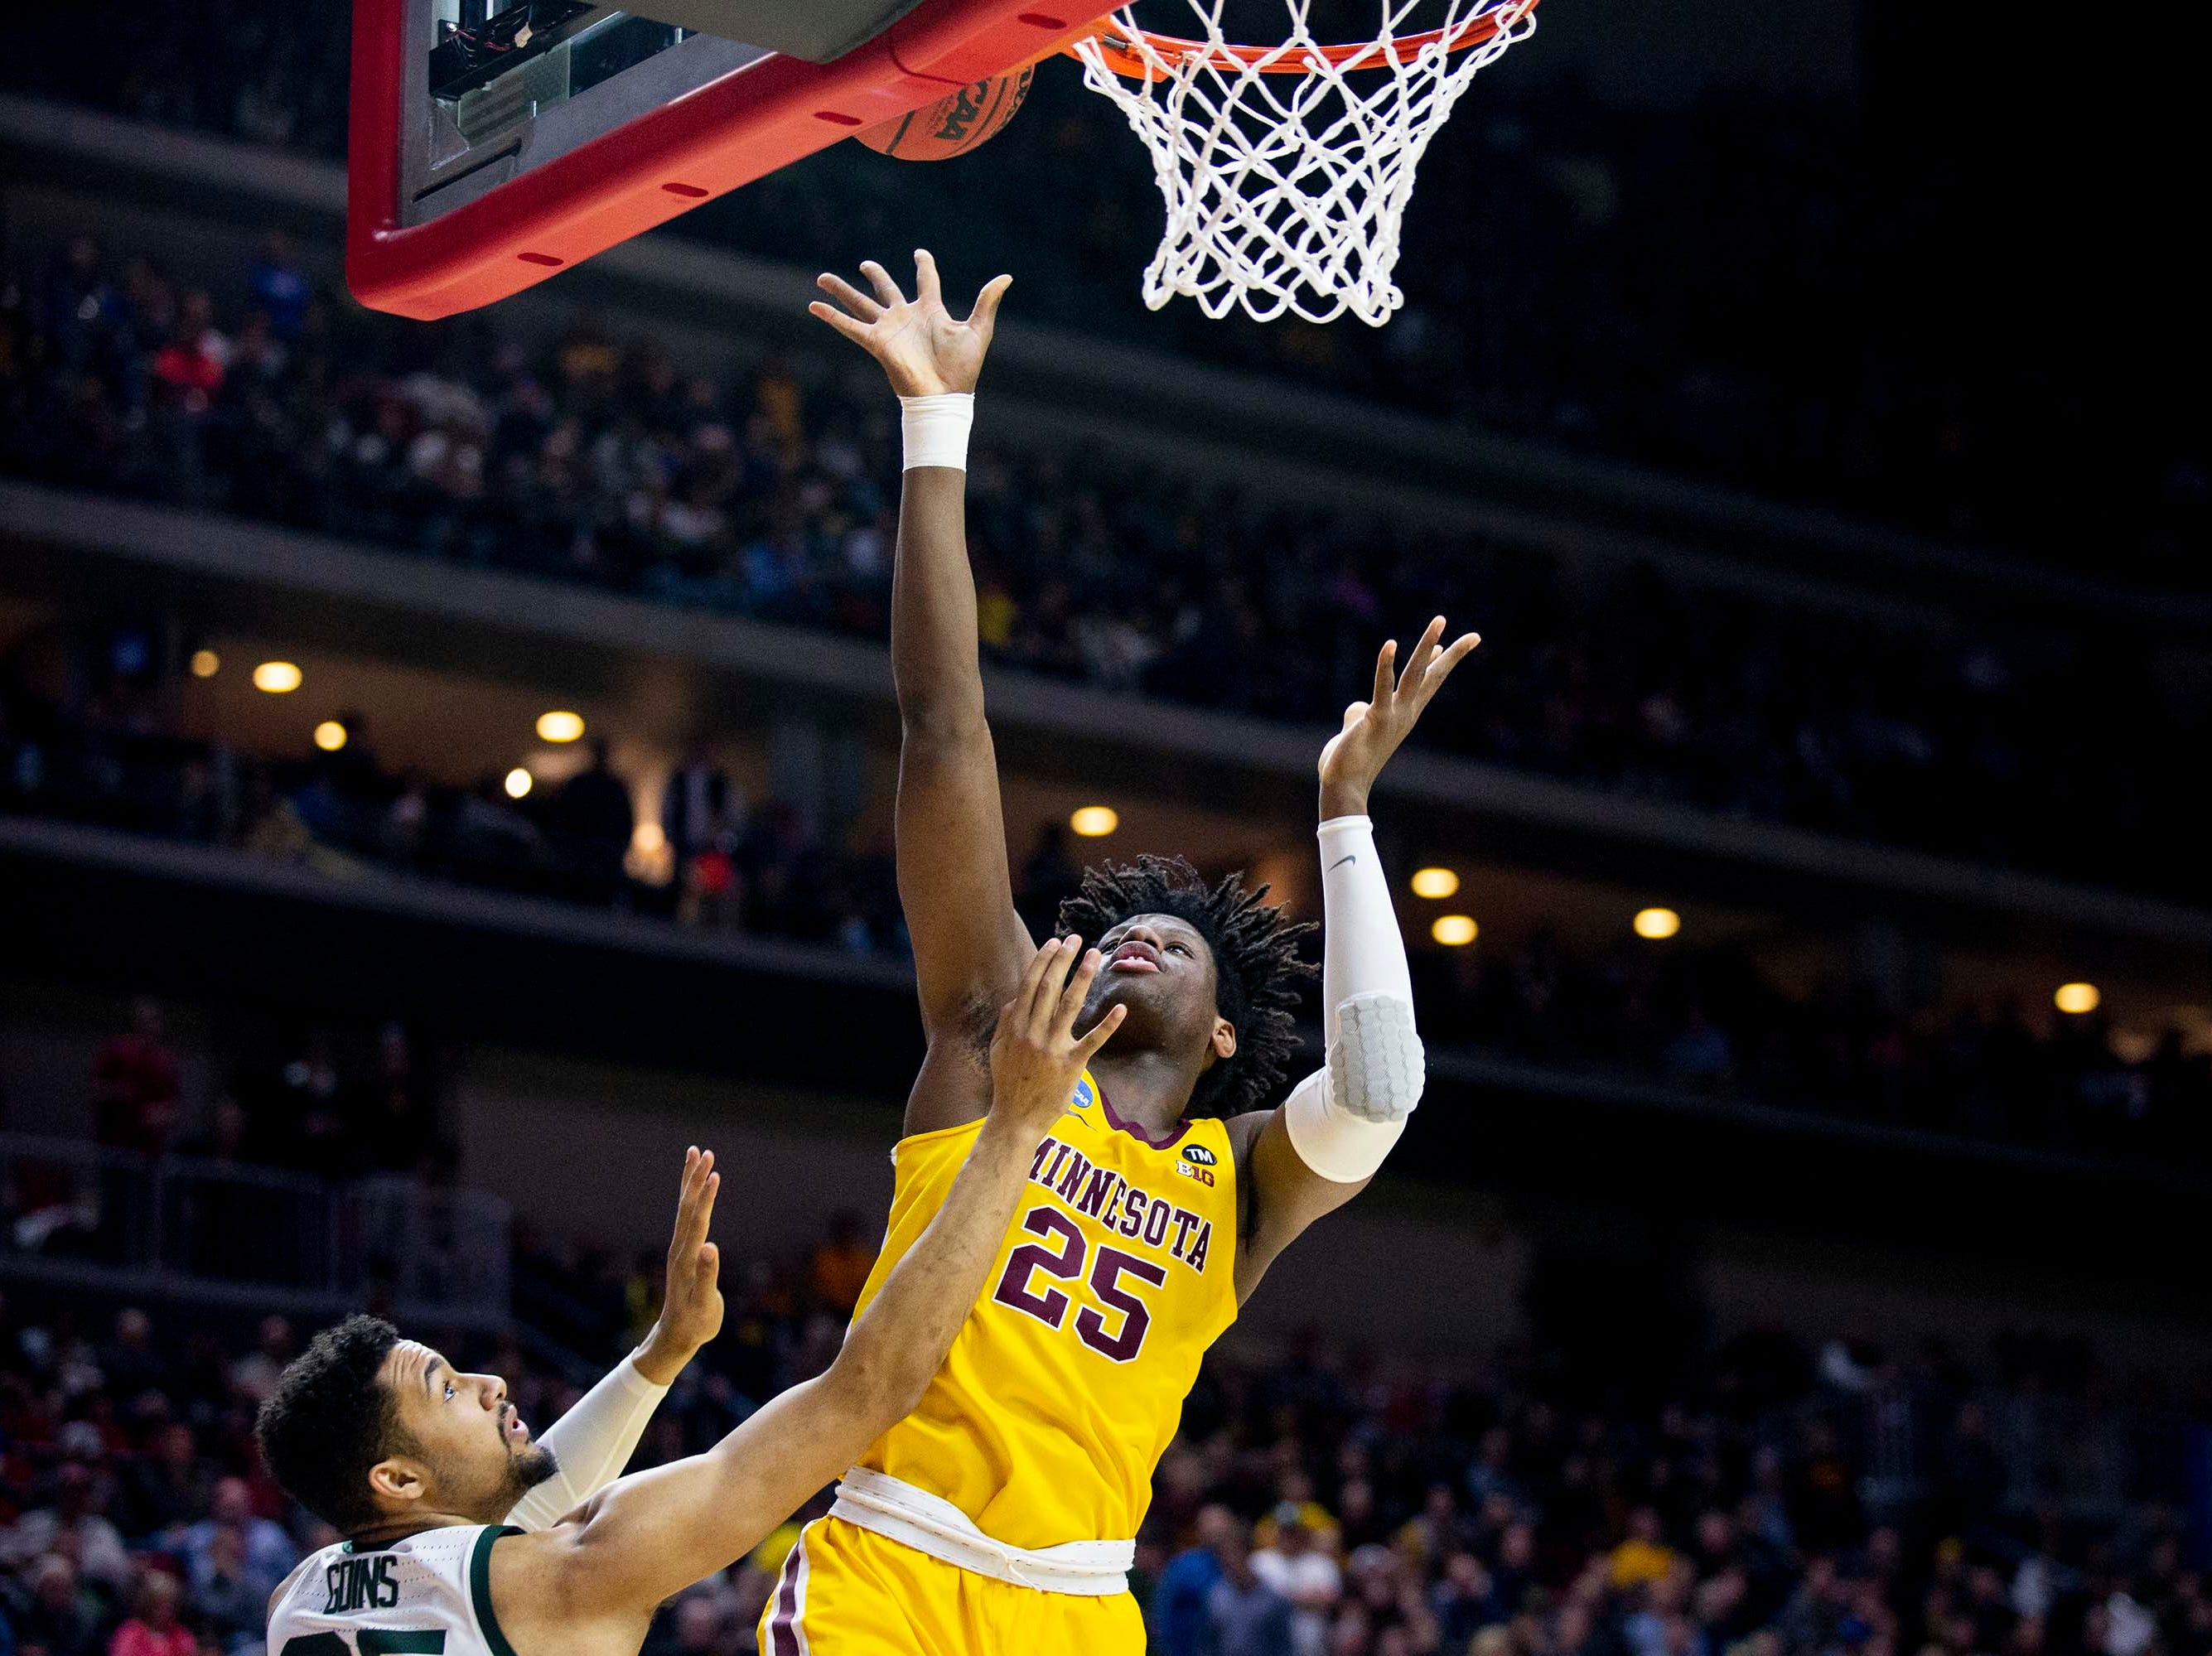 Minnesota's Daniel Oturu shoots the ball during the NCAA Tournament second-round match-up between Minnesota and Michigan State on Saturday, March 23, 2019, in Wells Fargo Arena in Des Moines, Iowa.